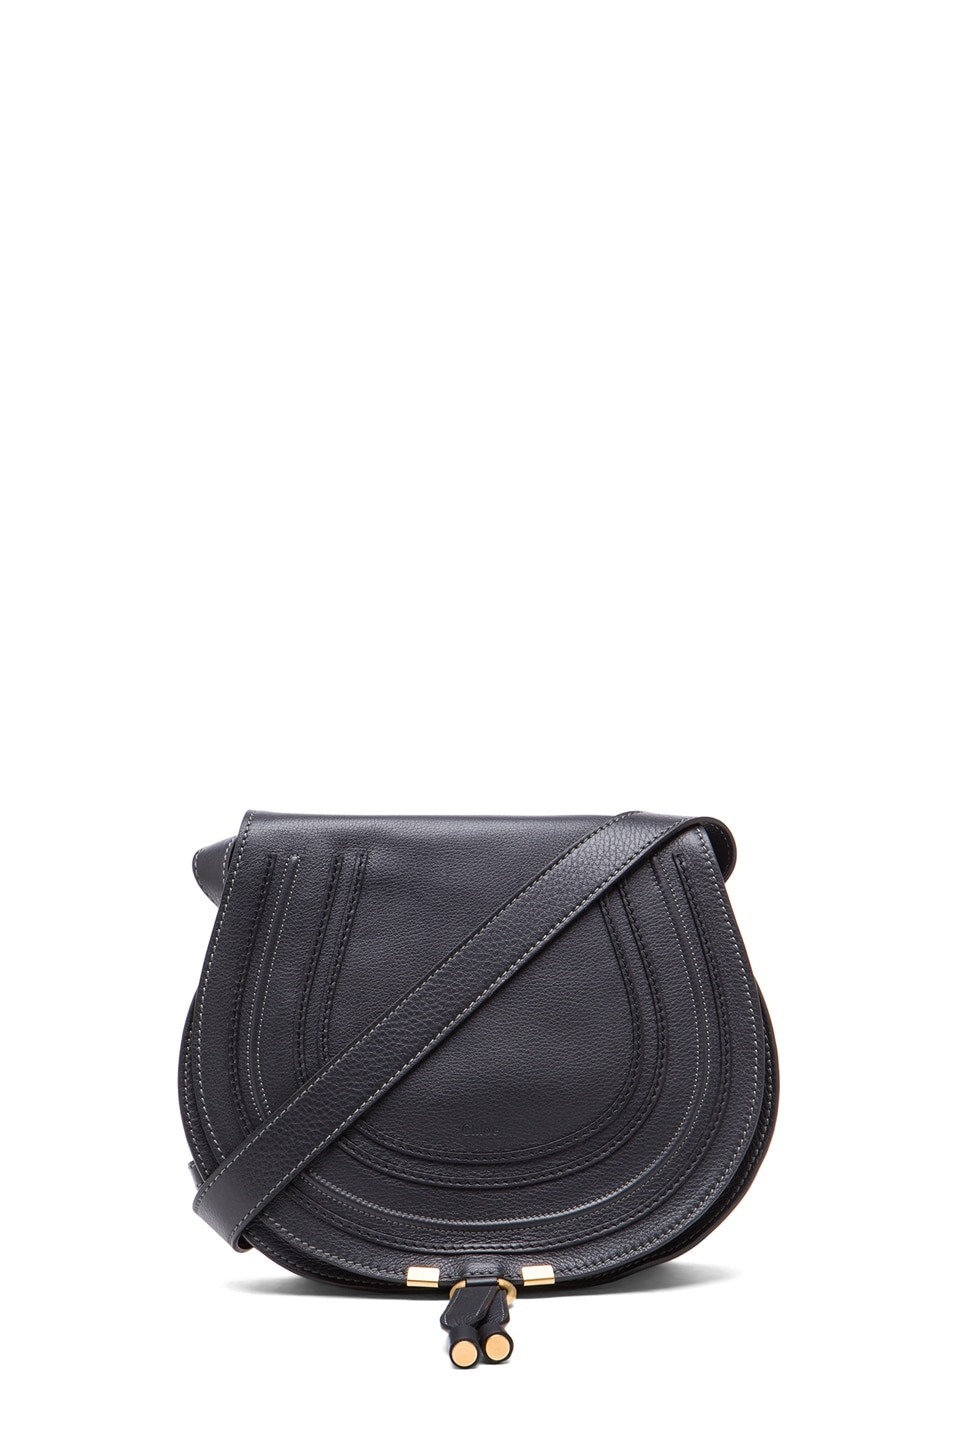 Image 1 of Chloe Medium Marcie Satchel in Black Bat